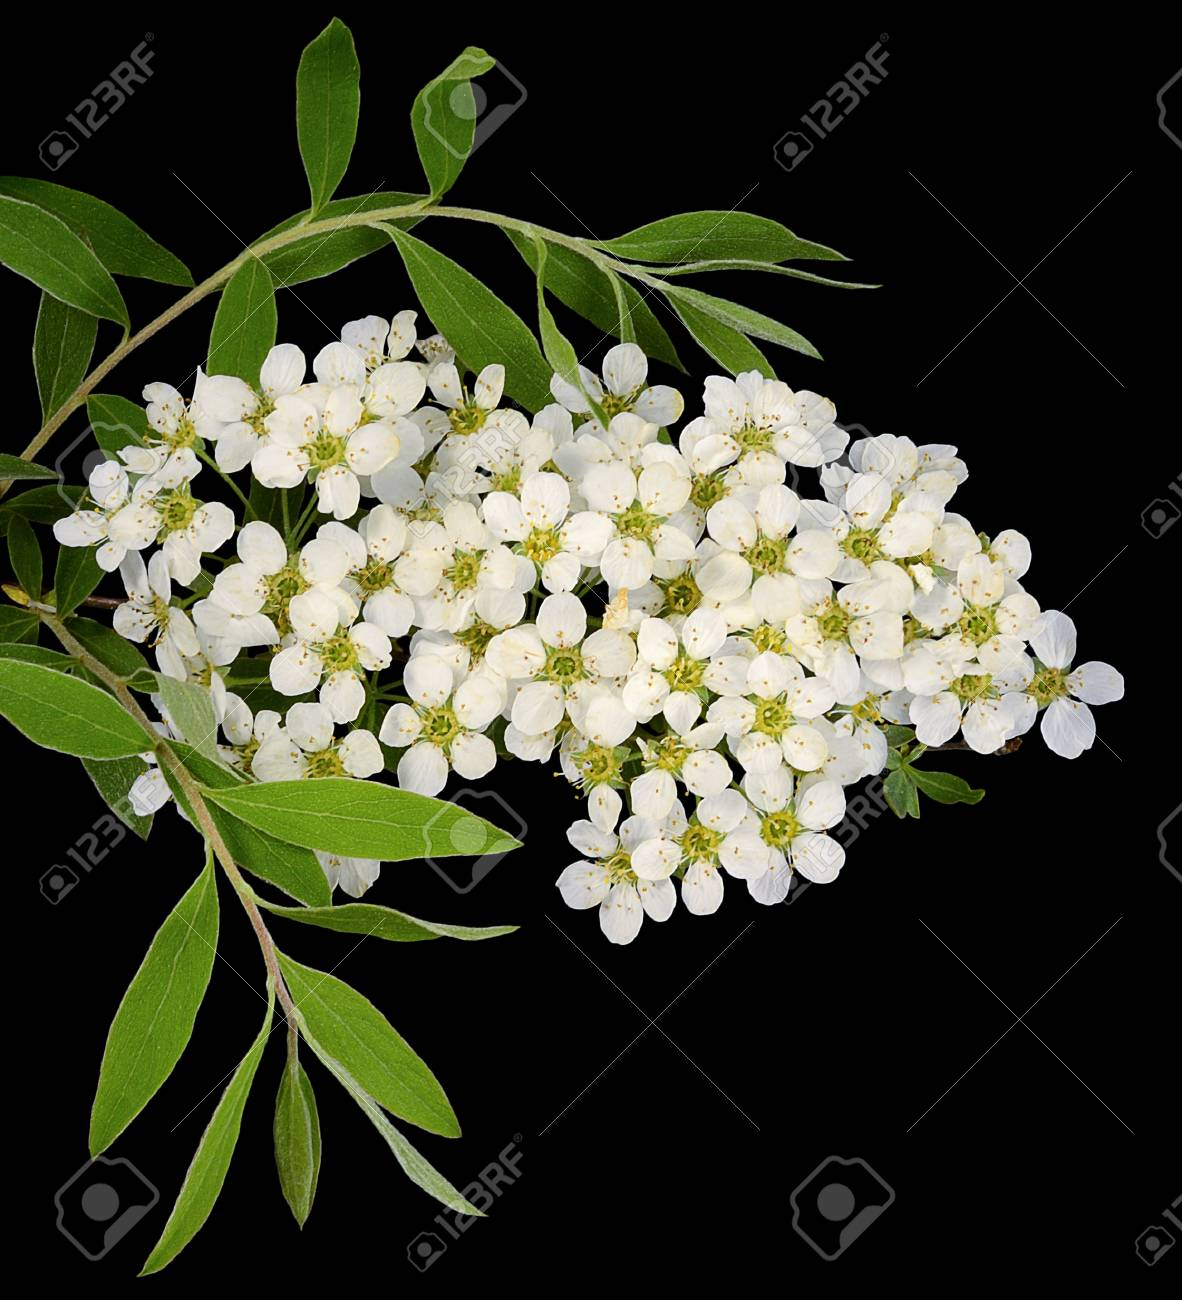 One Small Branch Of A Bush Of Spirea In Spring With Flowers Of